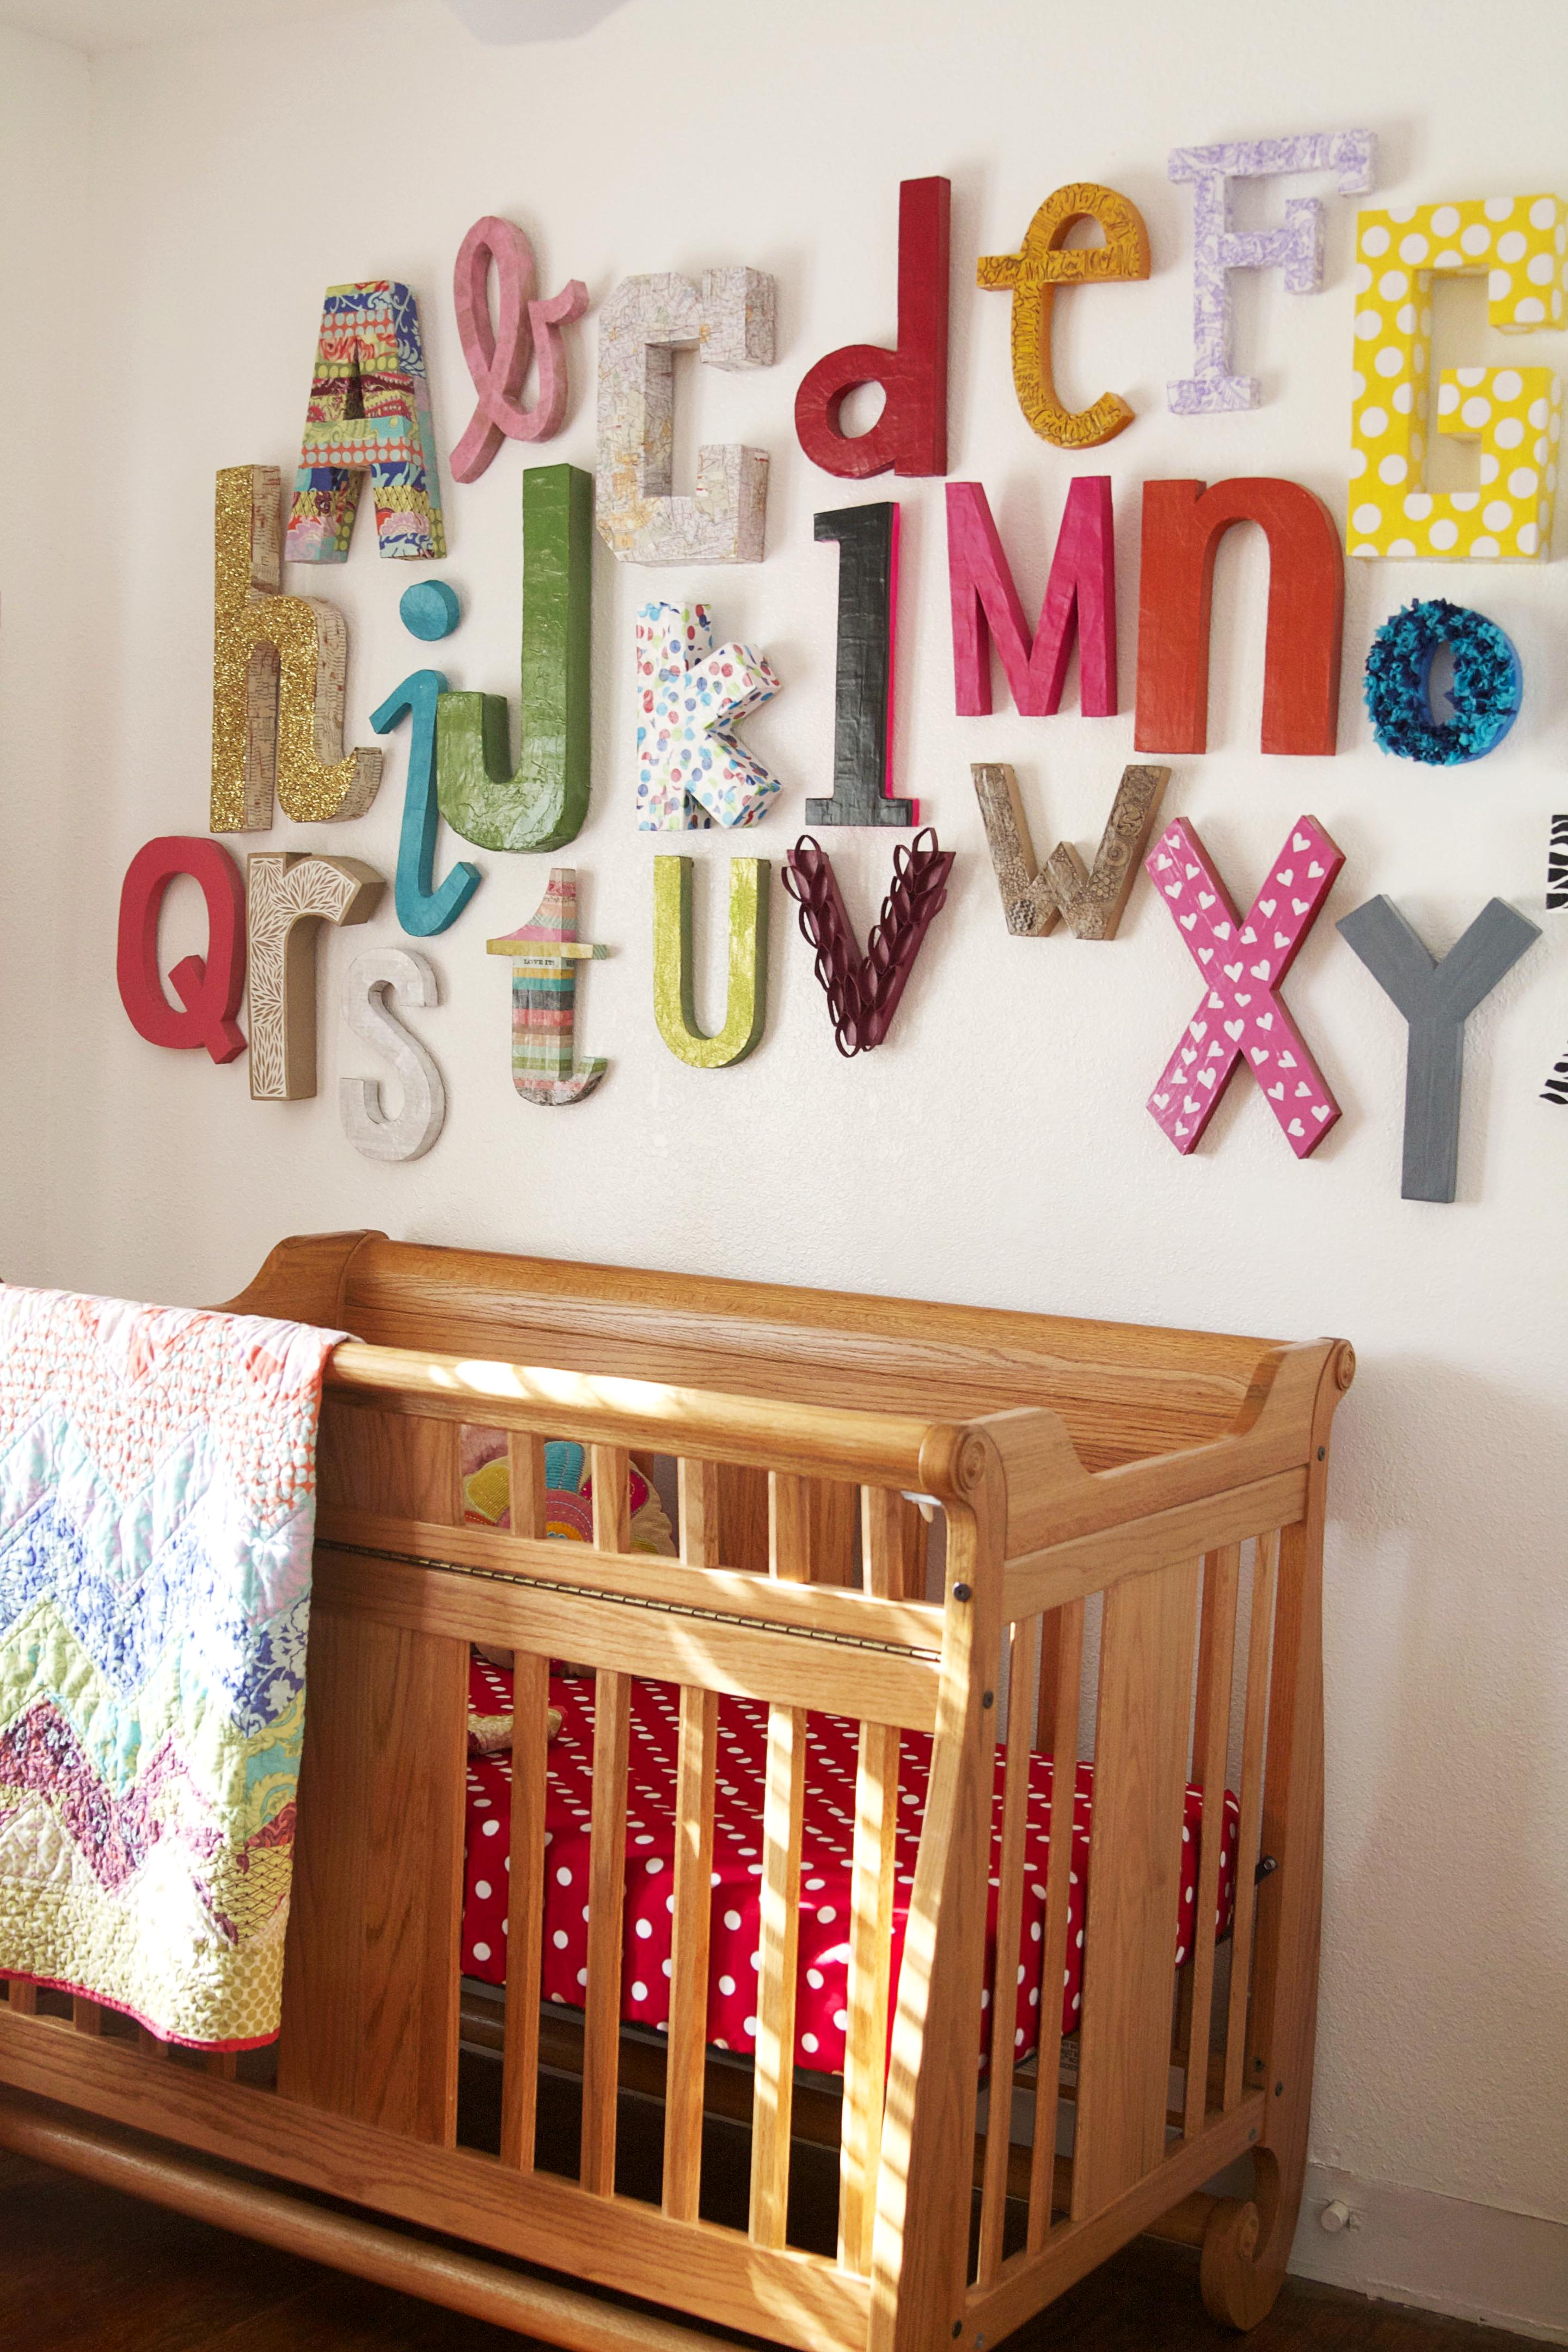 awesome decorations scheme s alphabet maddux decorate for so everything organize letters decor ideas of and decorative wall